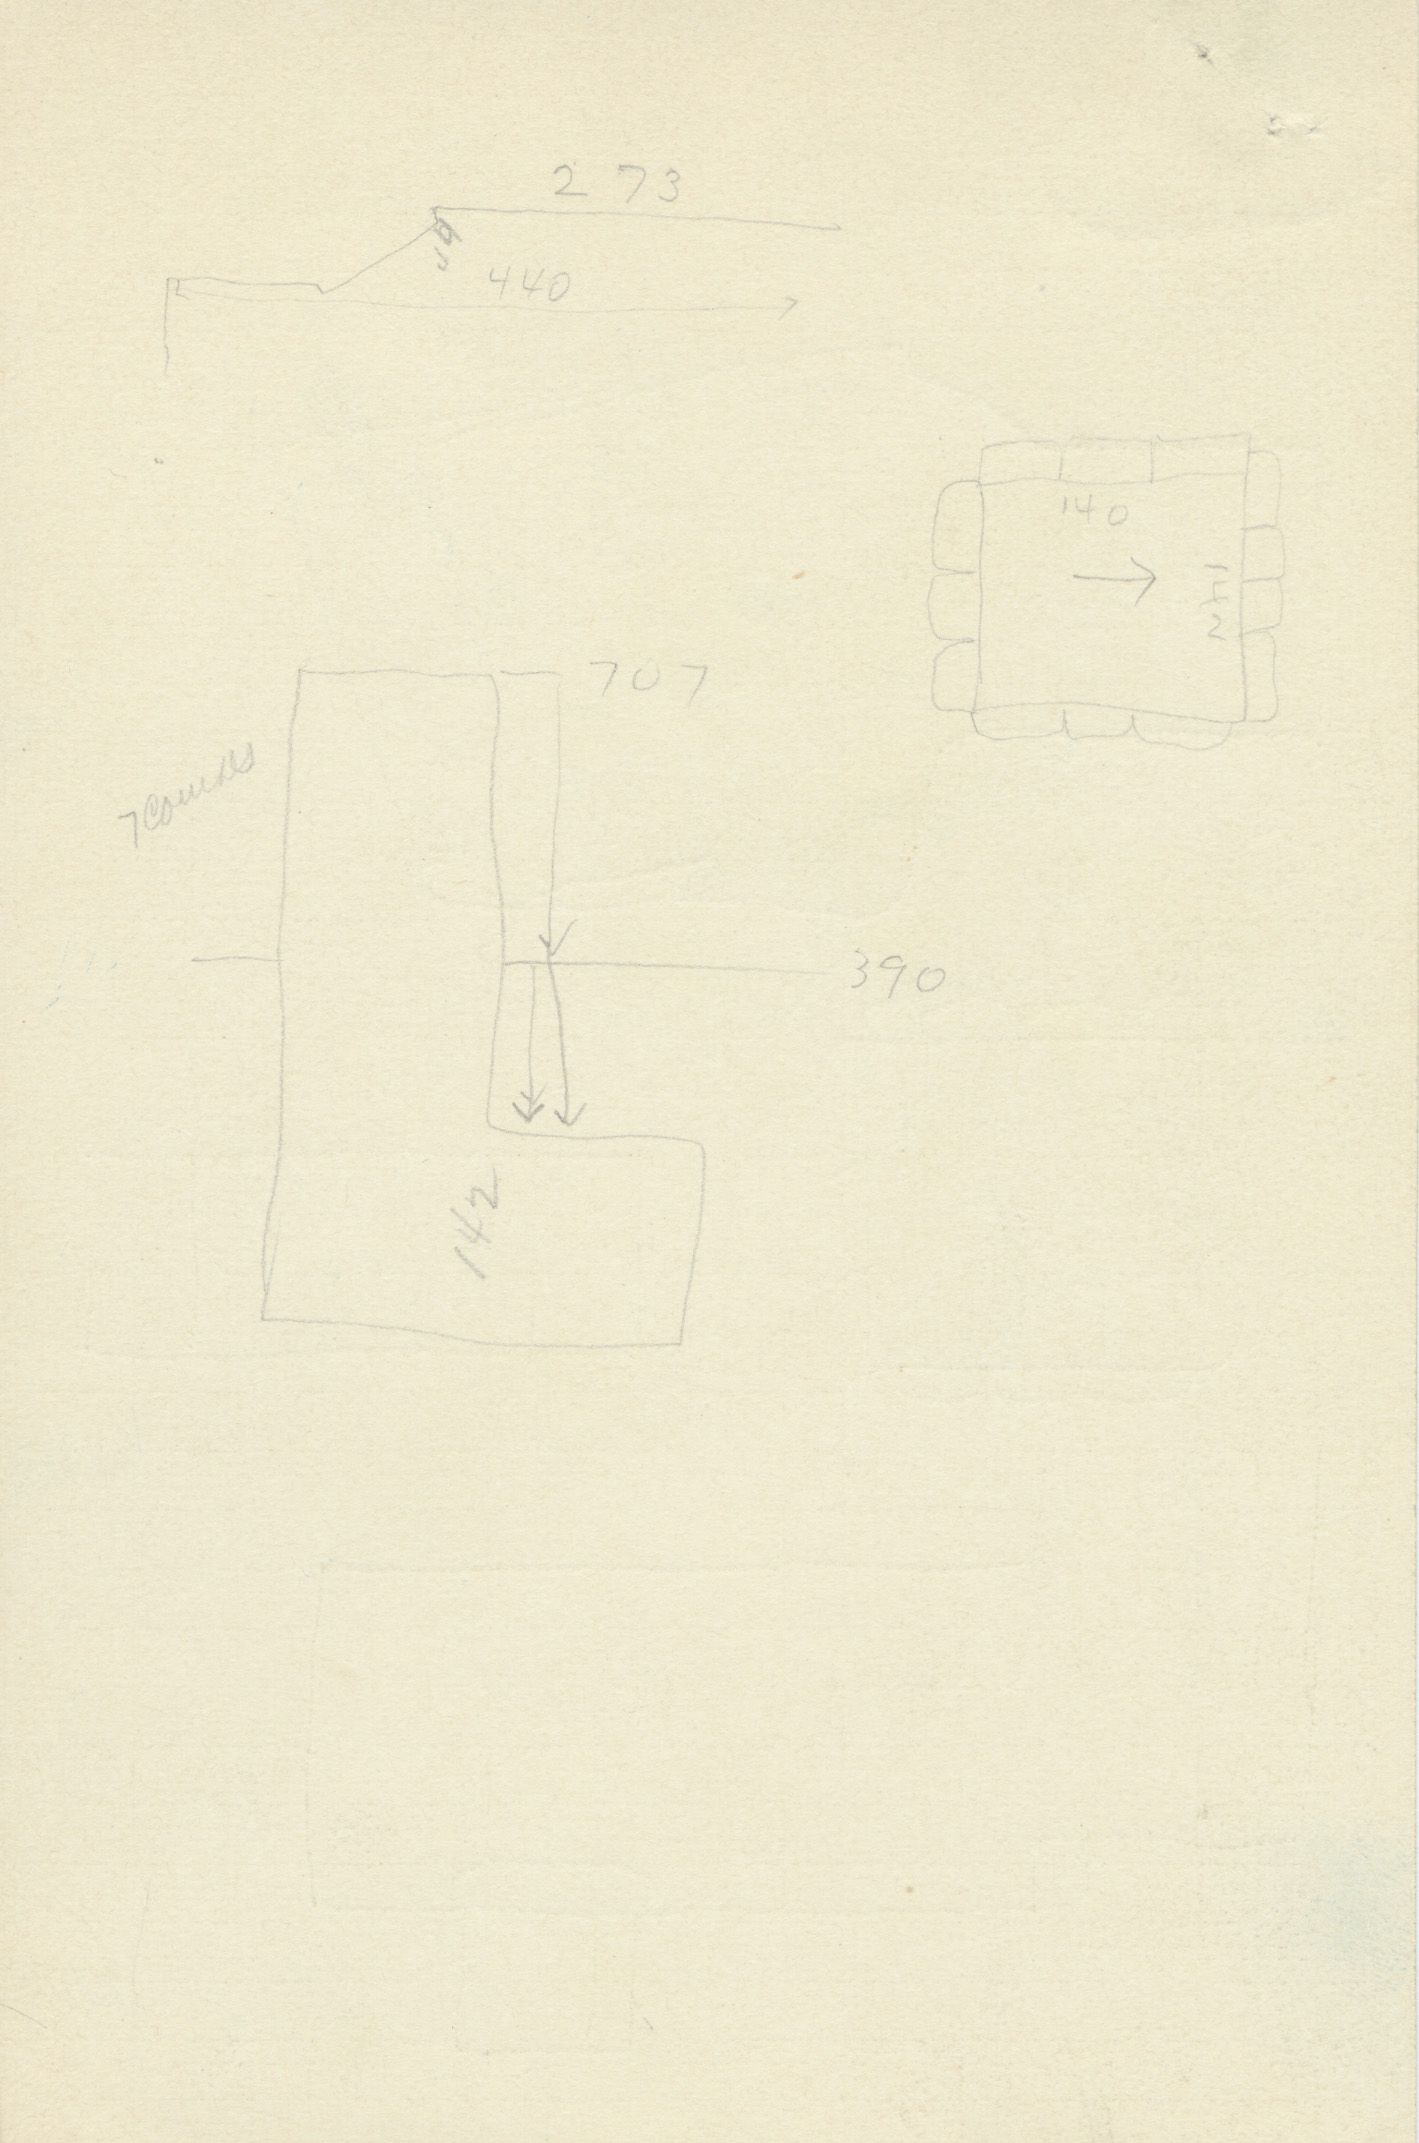 Maps and plans: G 2375, Shaft A, notes